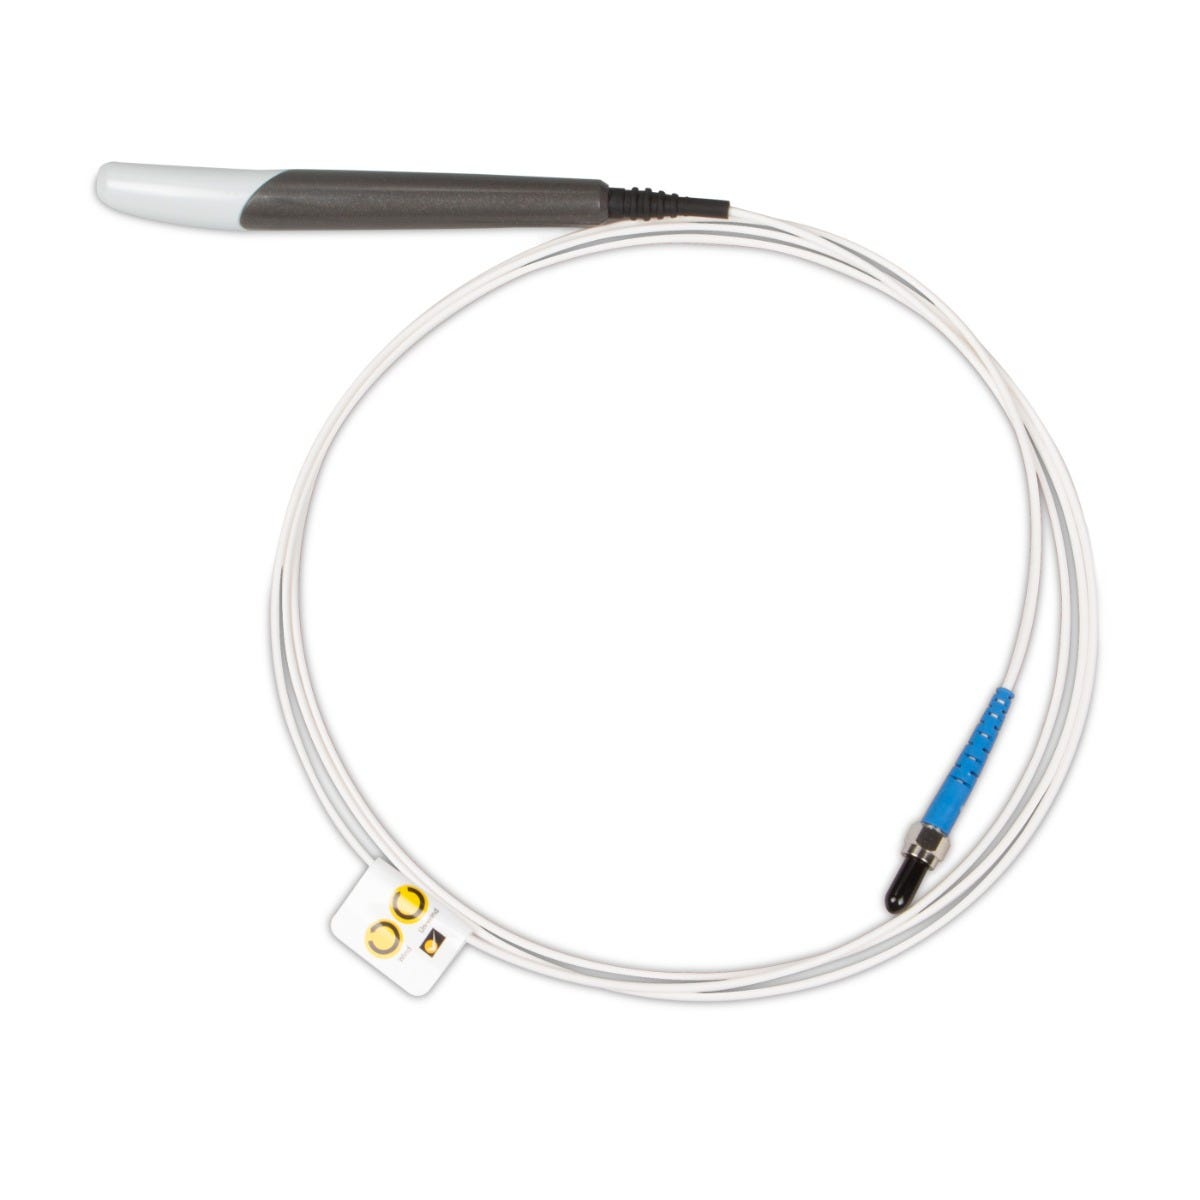 SOL® Soft-Tissue Dental Laser - Fiber cable and handle replacement